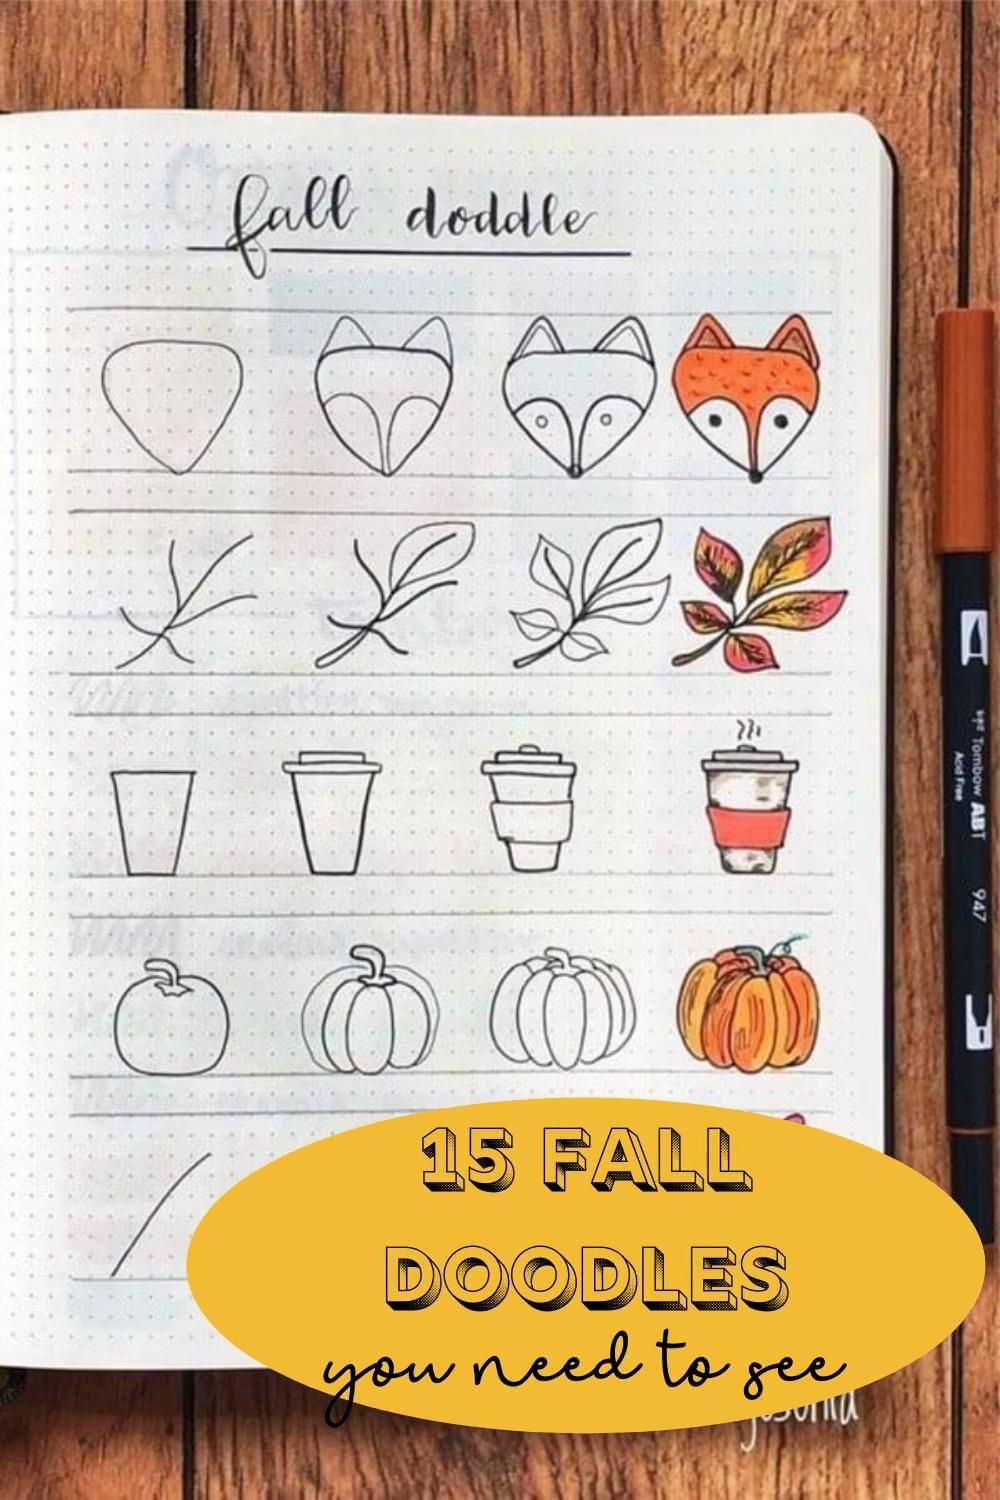 The BEST simple fall bullet journal doodles! I'm so excited to use these in my bullet journal for September, October and November! All the Pumpkin, falling leaves, coffee and general fall mood doodles. Step by step doodles teaching how to draw so simply!